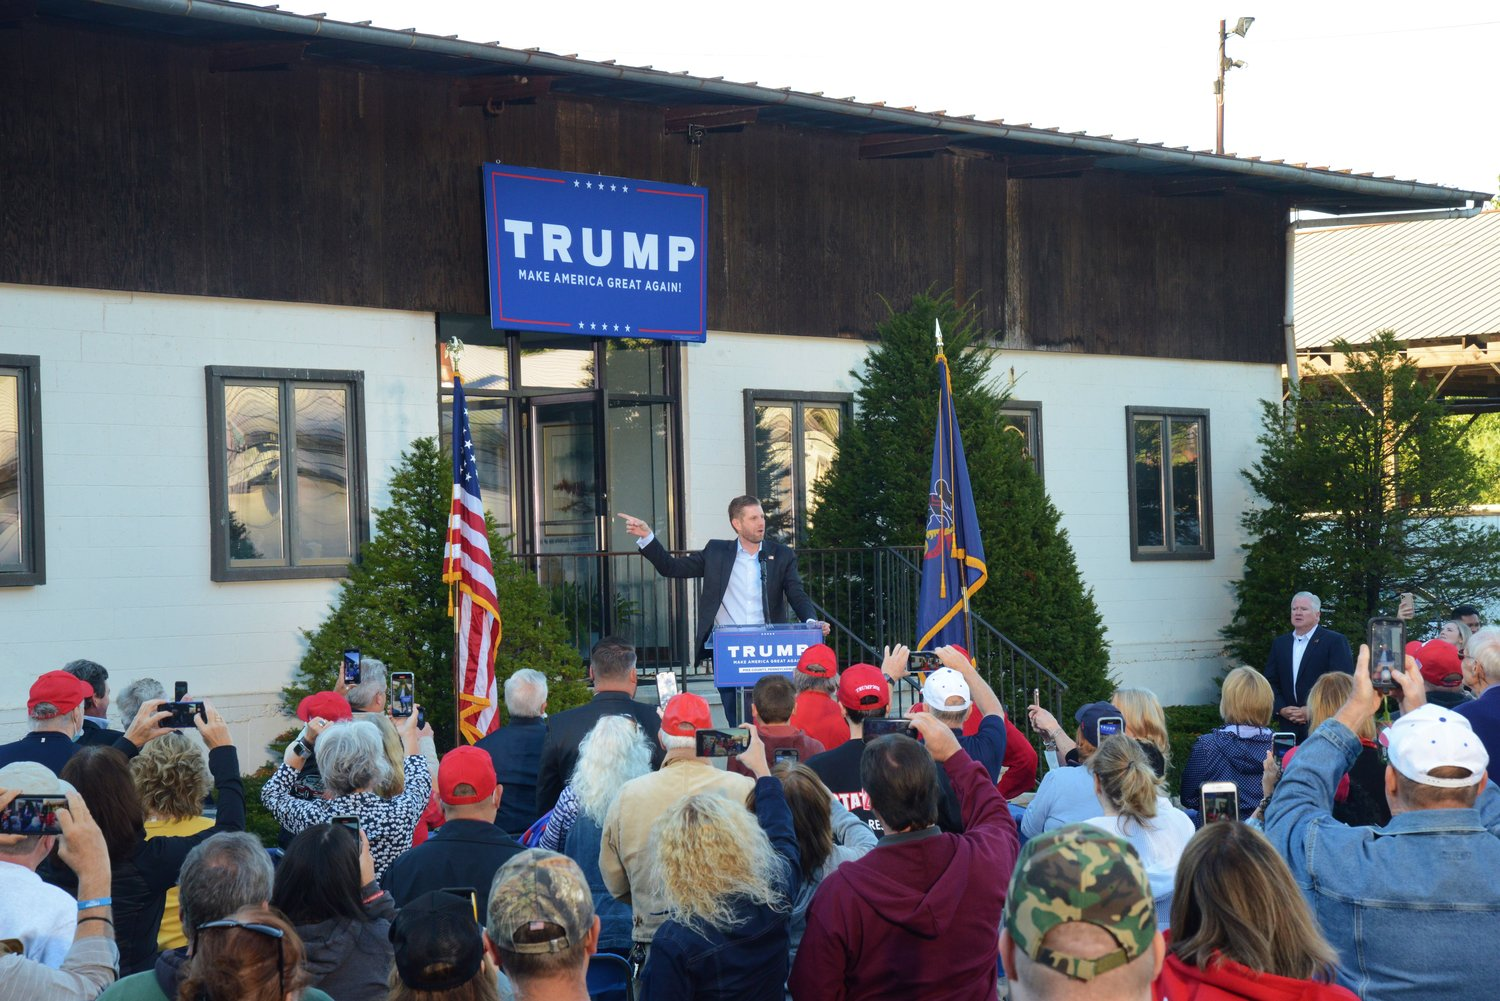 St Judes And Eric Trump Christmas 2020 Eric Trump speaks in Milford | The River Reporter